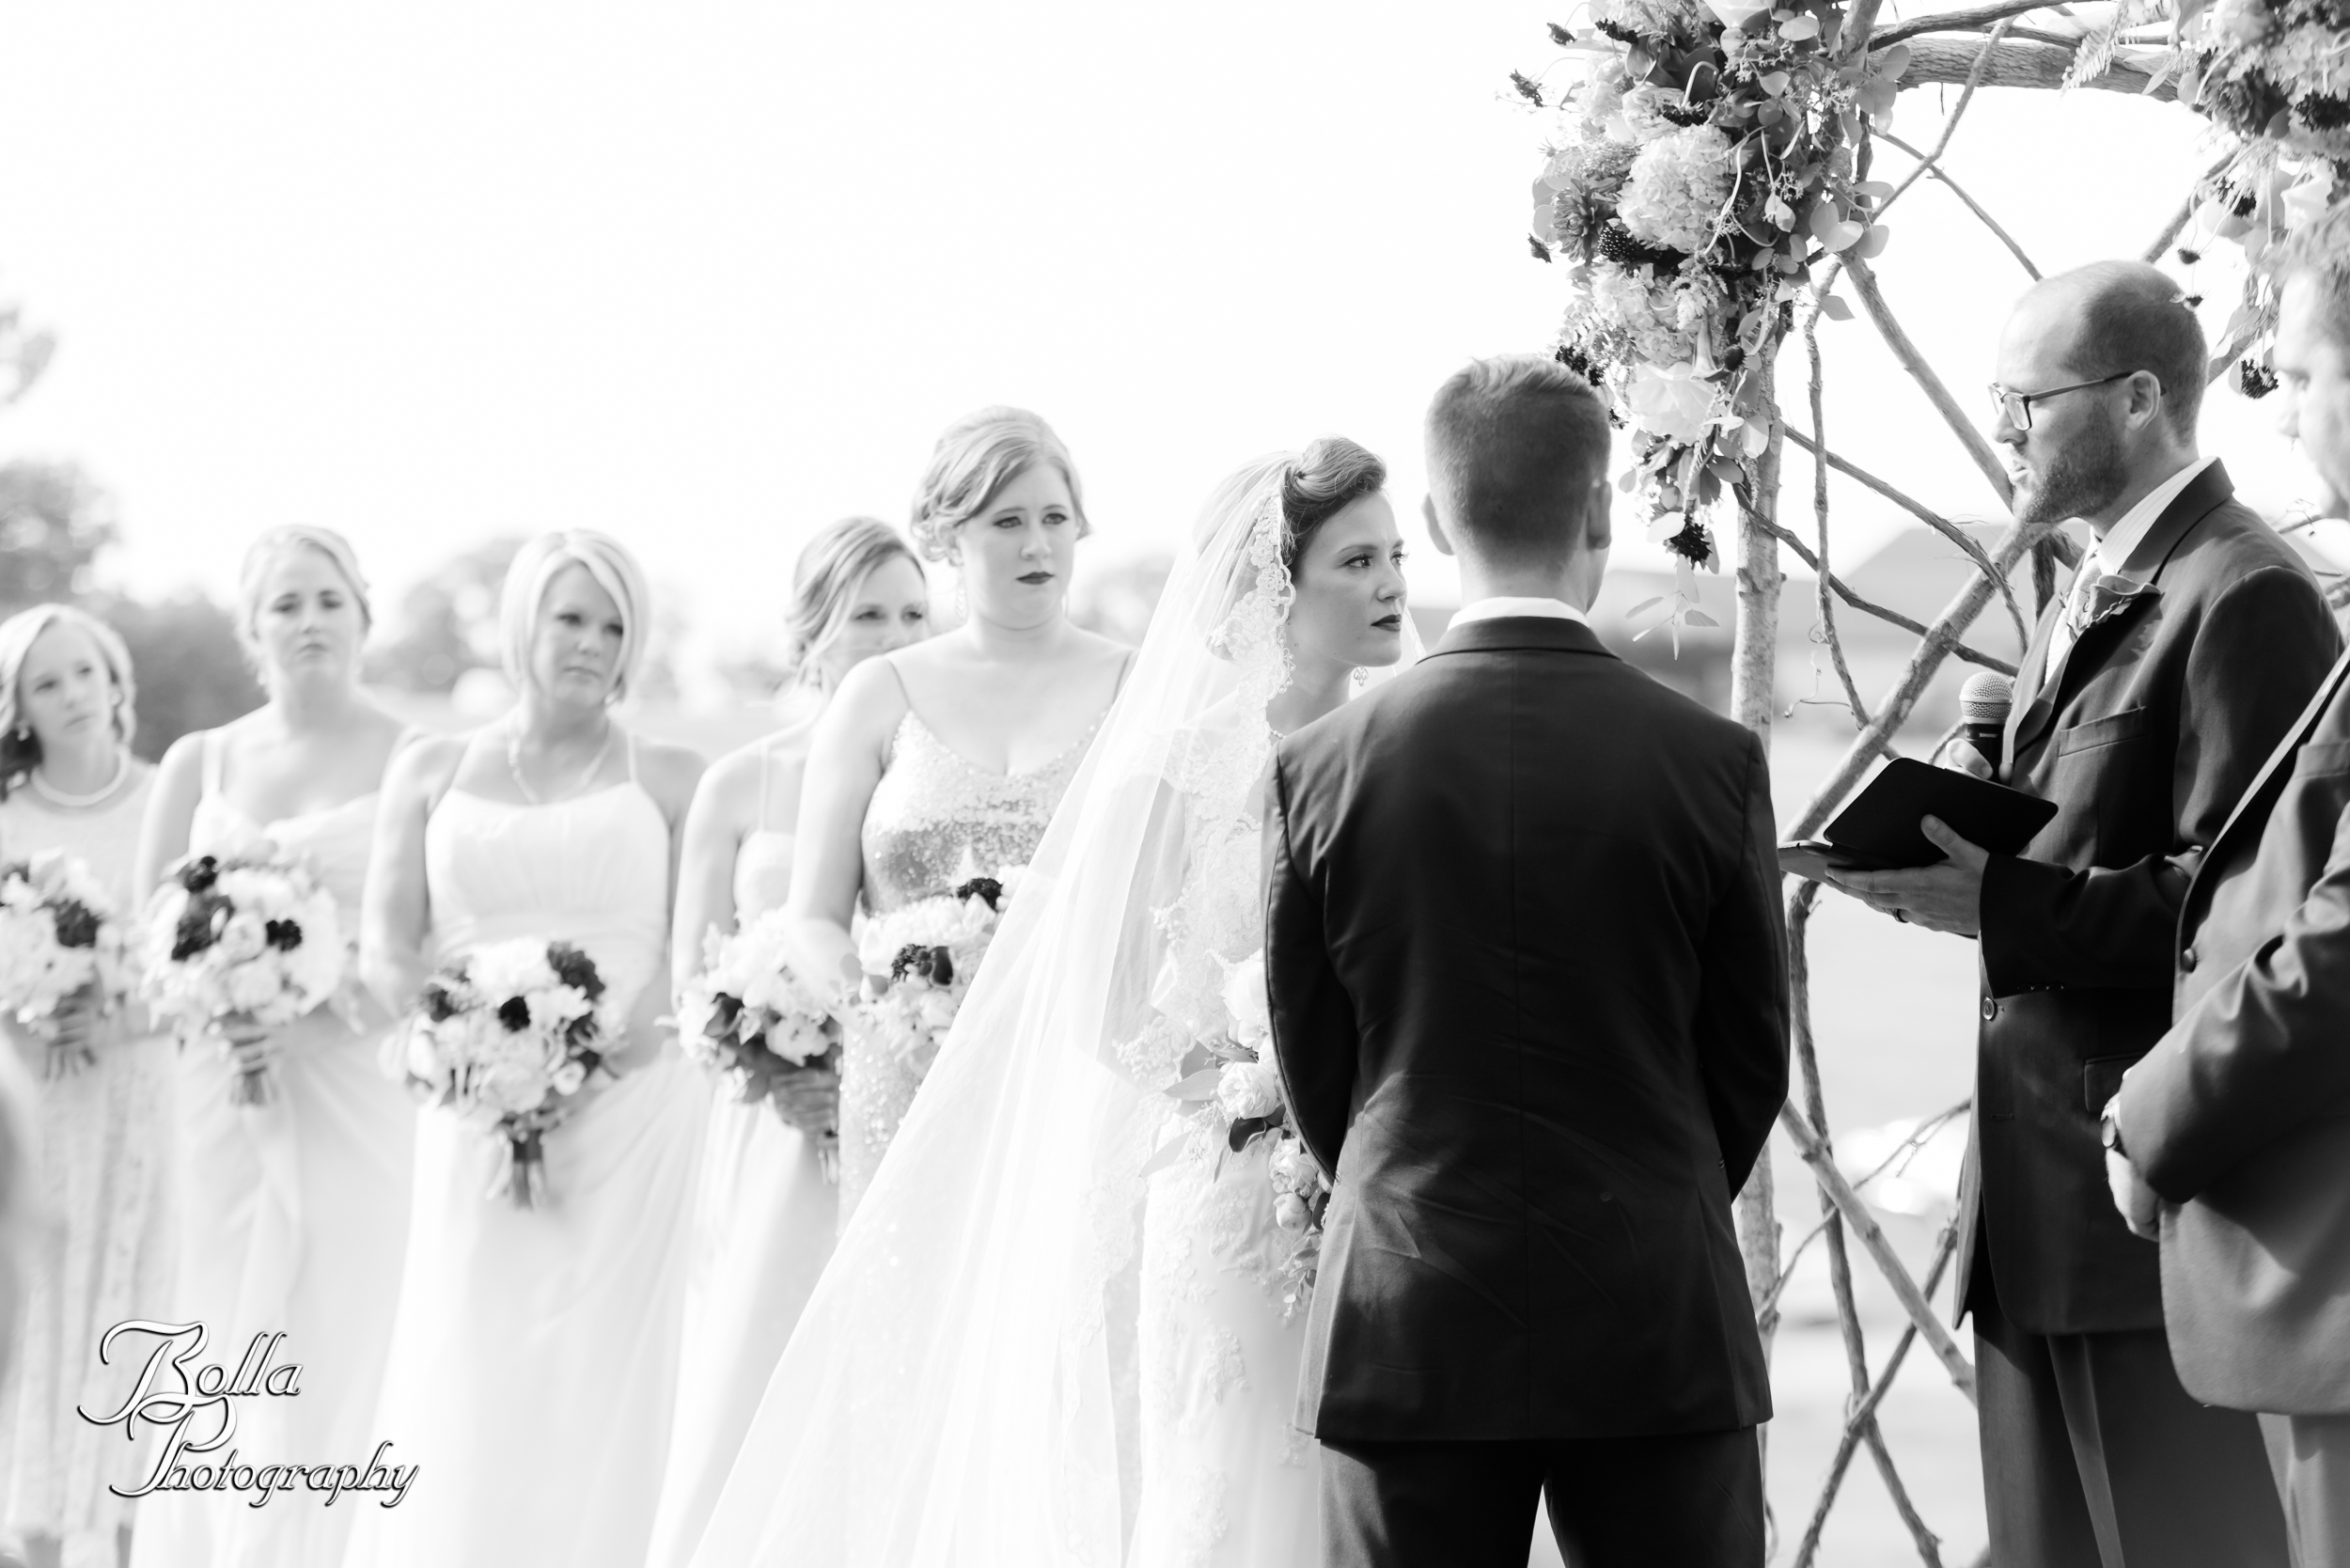 Bolla_photography_edwardsville_wedding_photographer_st_louis_weddings_Chaumette_winery_Mikusch-0381.jpg